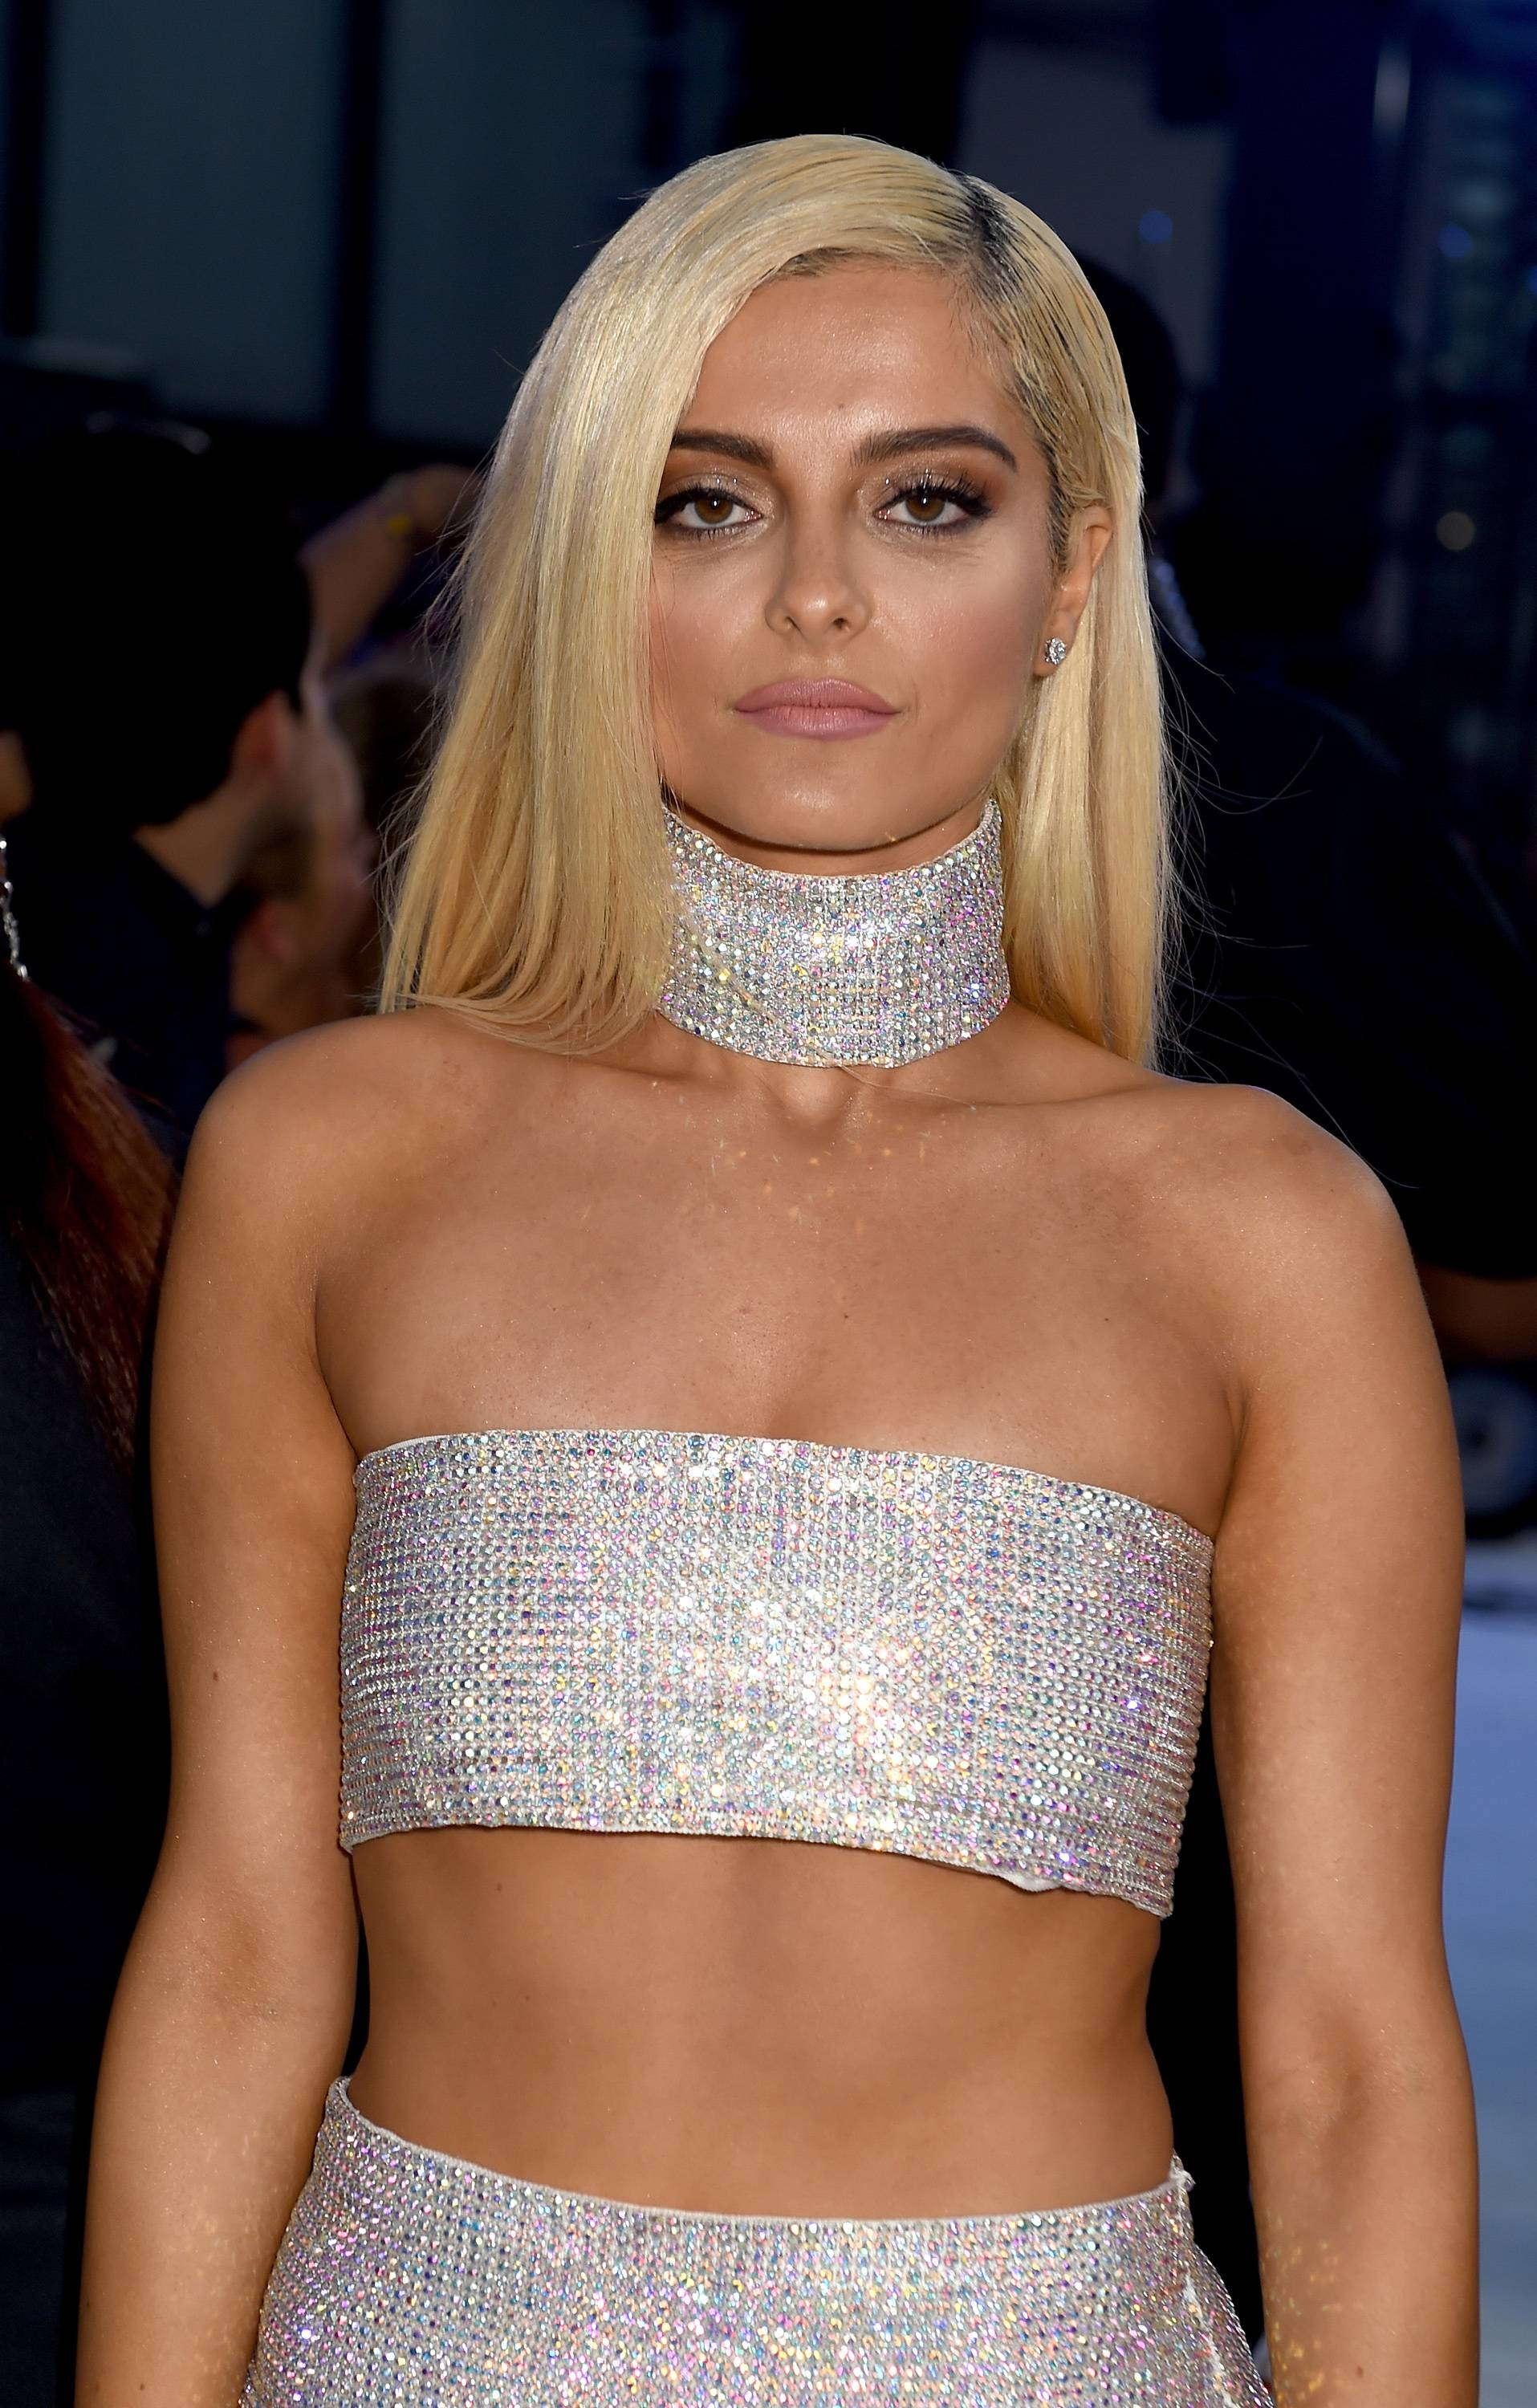 Bebe Rexha struts her stuff in a shimmering crystal skirt and matching crop top at the 2016 VMAs.